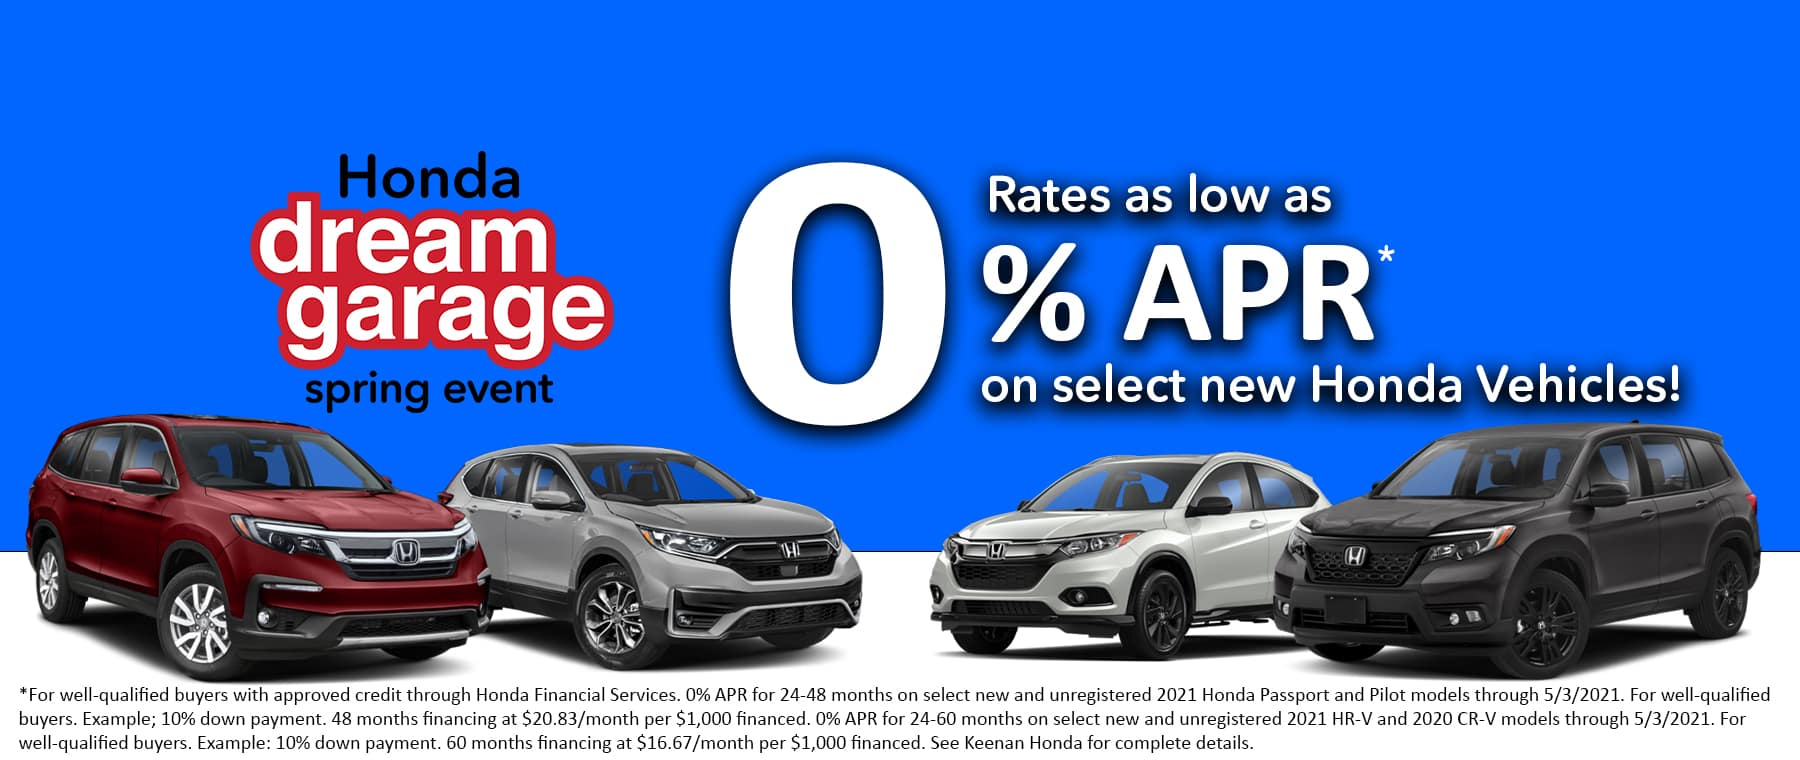 Financing as low as 0% APR on select New Honda models at Keenan Honda!